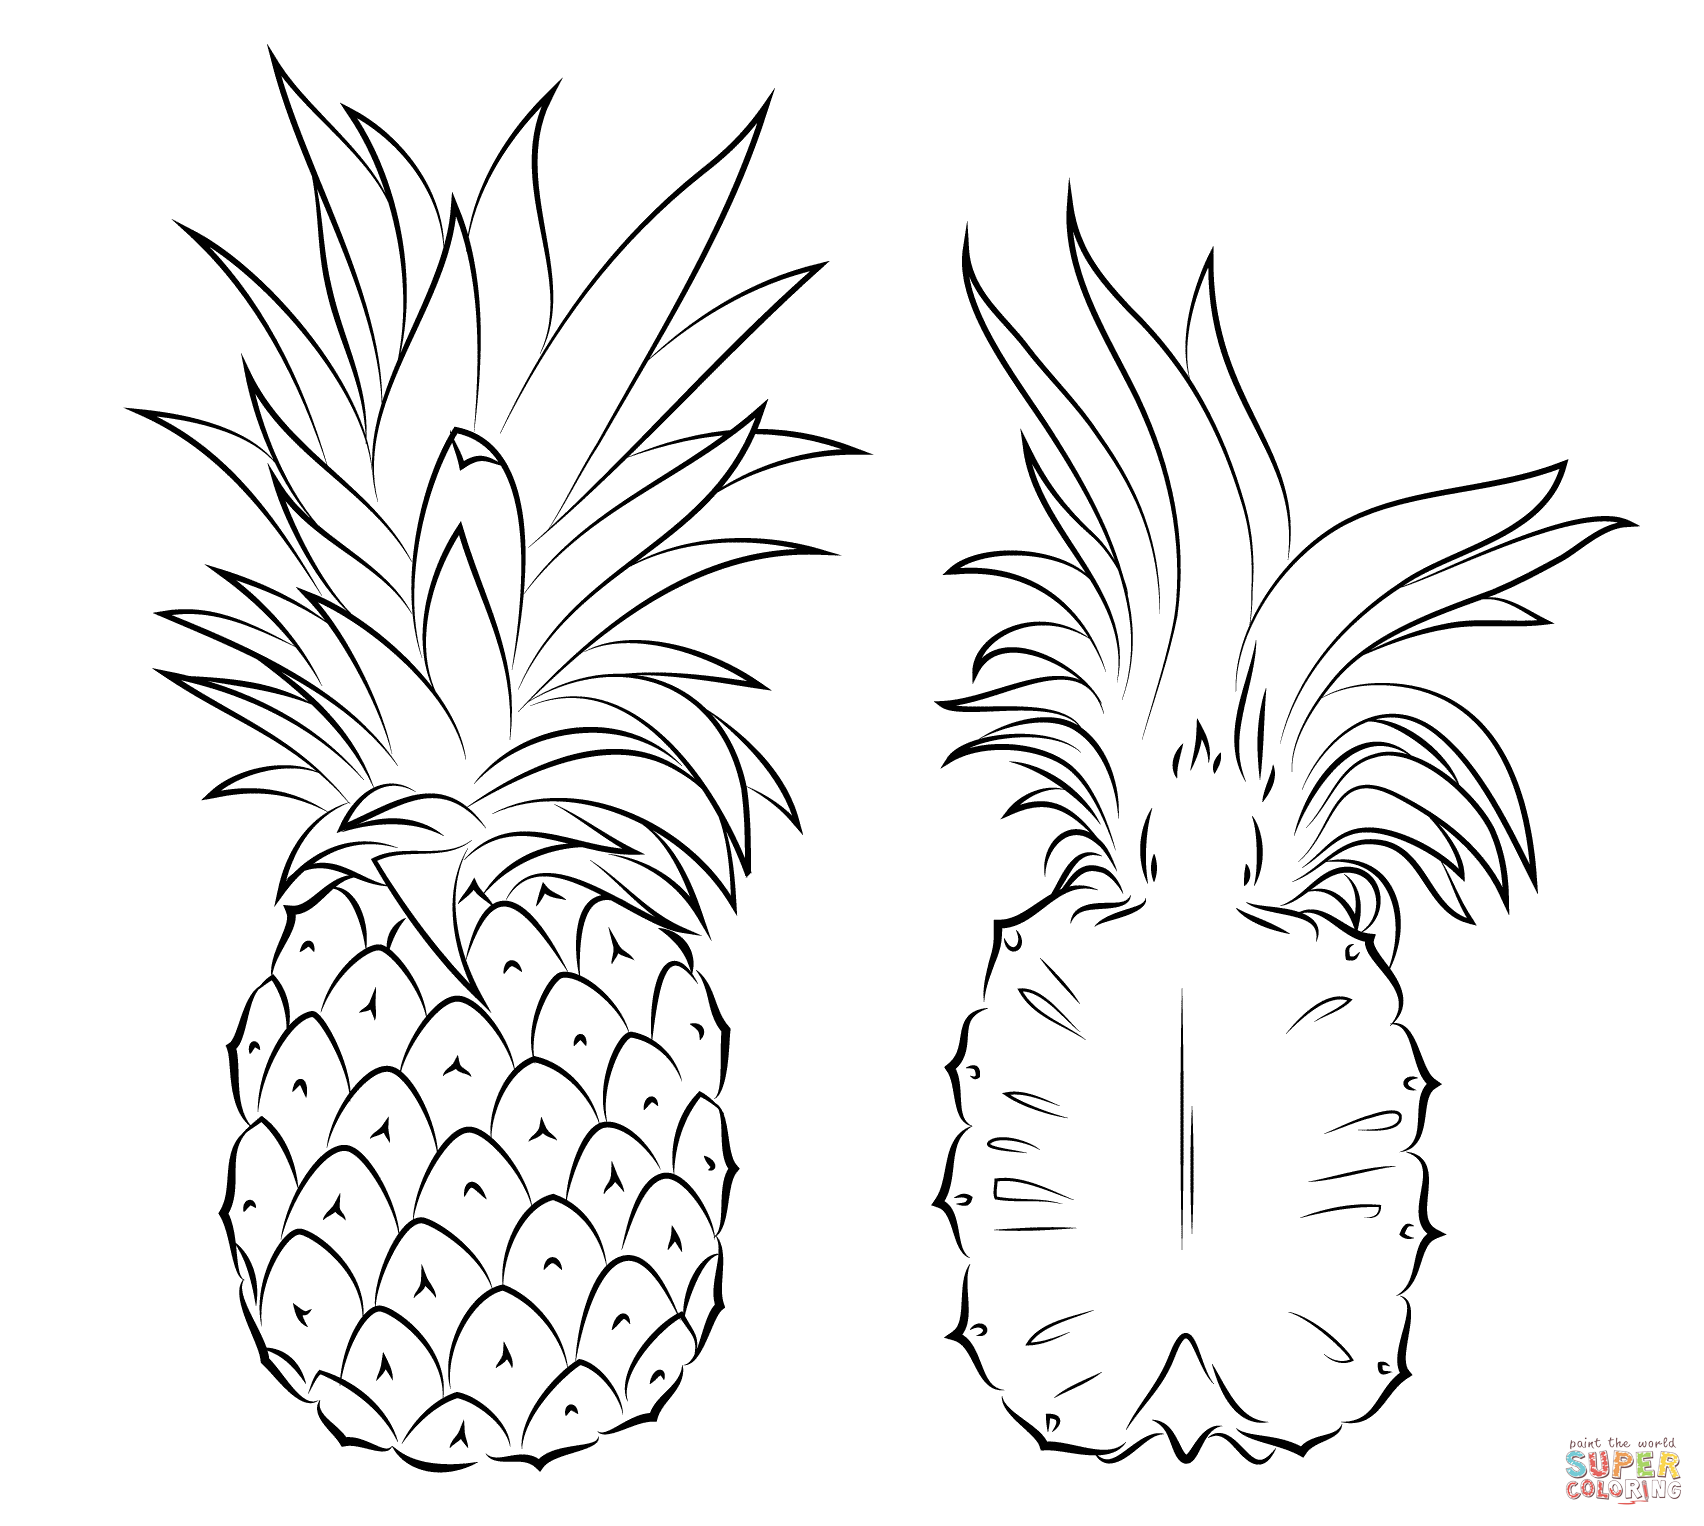 Pineapple clipart coloring page Drawing Cross Pineapple Pages A